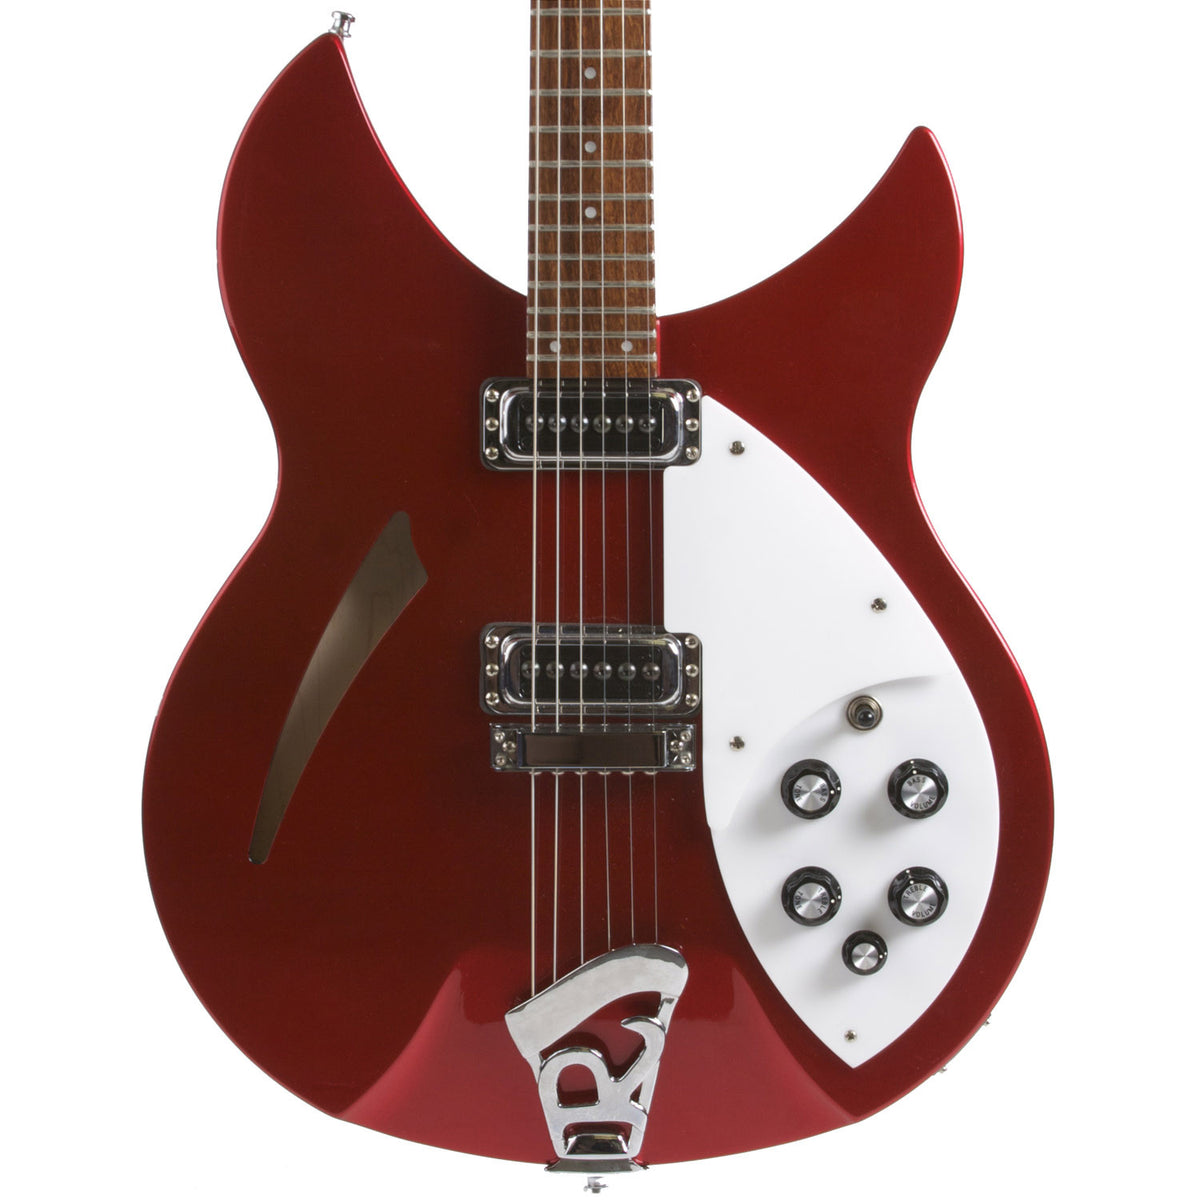 2013 Rickenbacker 330 Ruby Red - Garrett Park Guitars  - 2